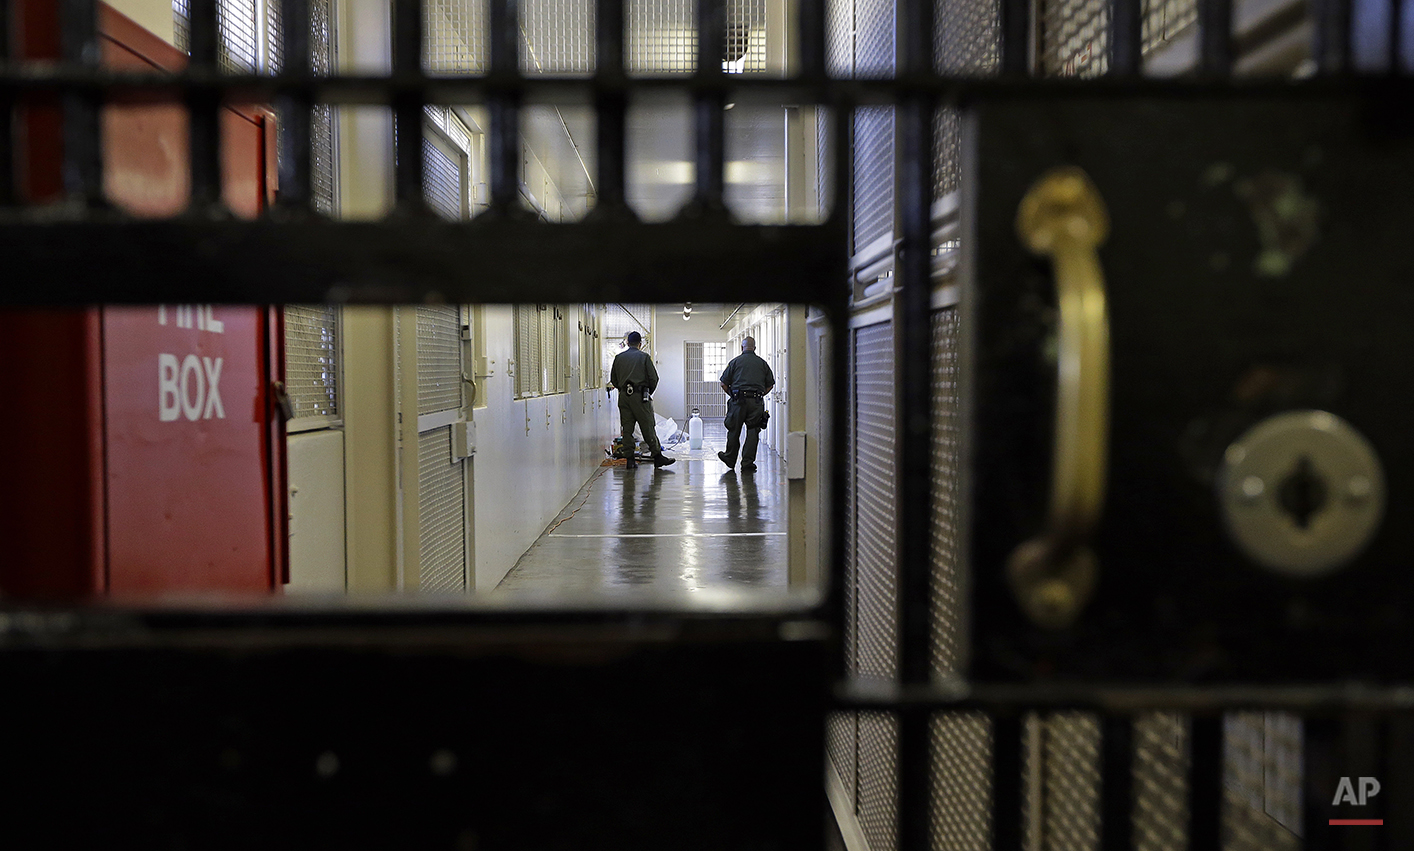 In this photo taken on Tuesday, Dec. 29, 2015, prison guards walk down a corridor in the Adjustment Center at San Quentin State Prison in San Quentin, Calif. With California's lethal injection protocol in limbo, the nearly 750 inmates at San Quentin State Prison, the nation's most populous death row, are more likely to die from natural causes or suicide than execution. (AP Photo/Ben Margot)